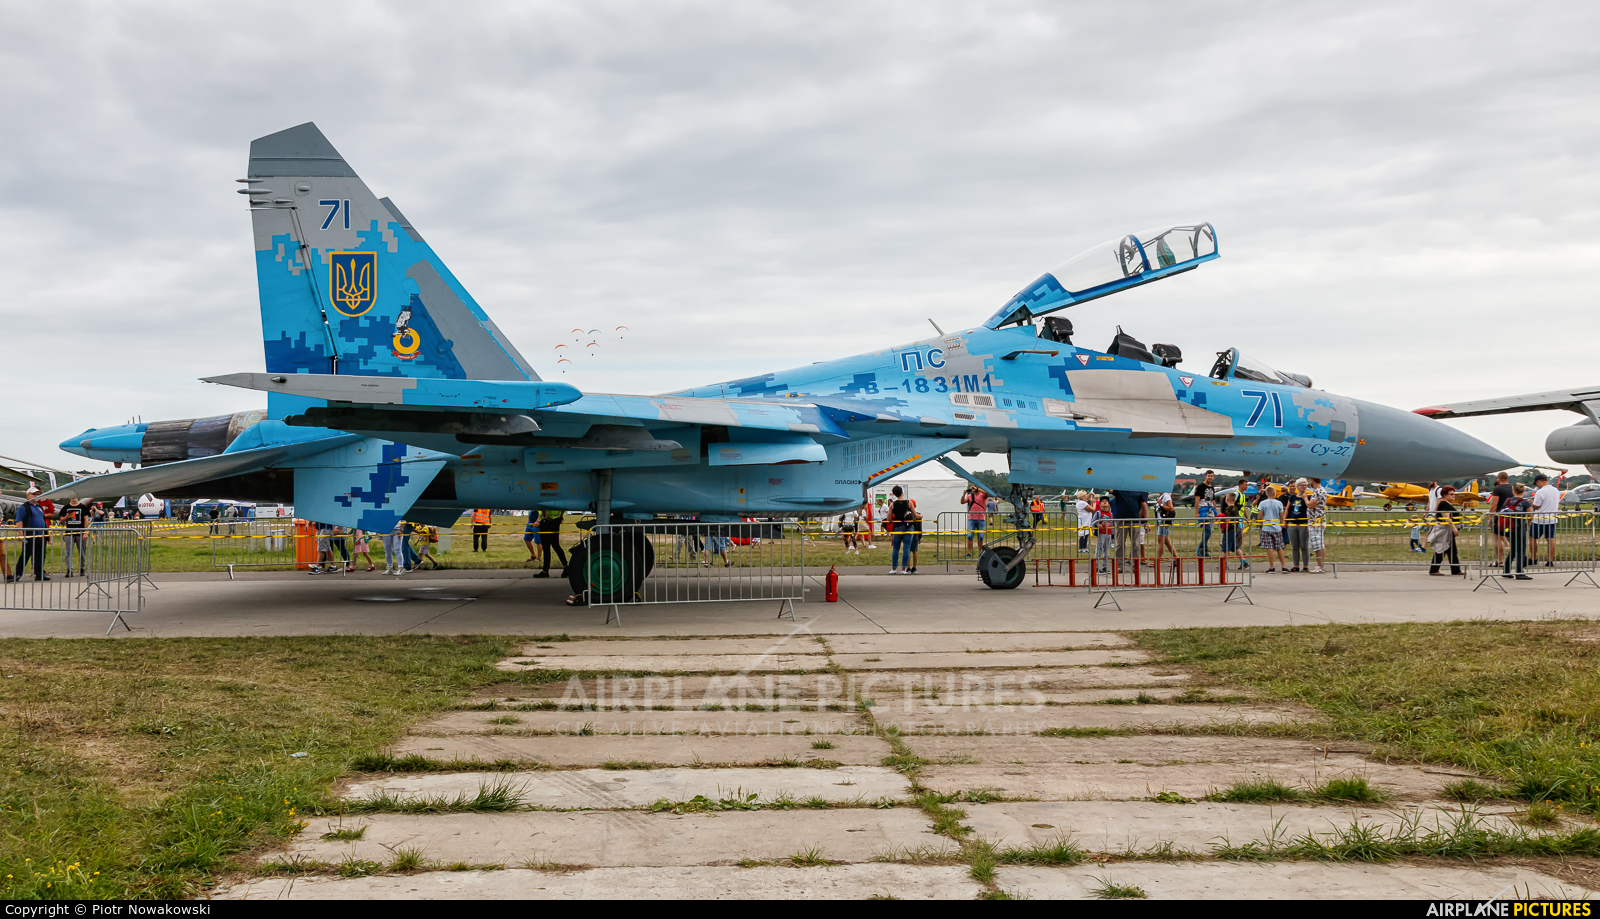 Ukraine - Air Force 71 aircraft at Gdynia- Babie Doły (Oksywie)